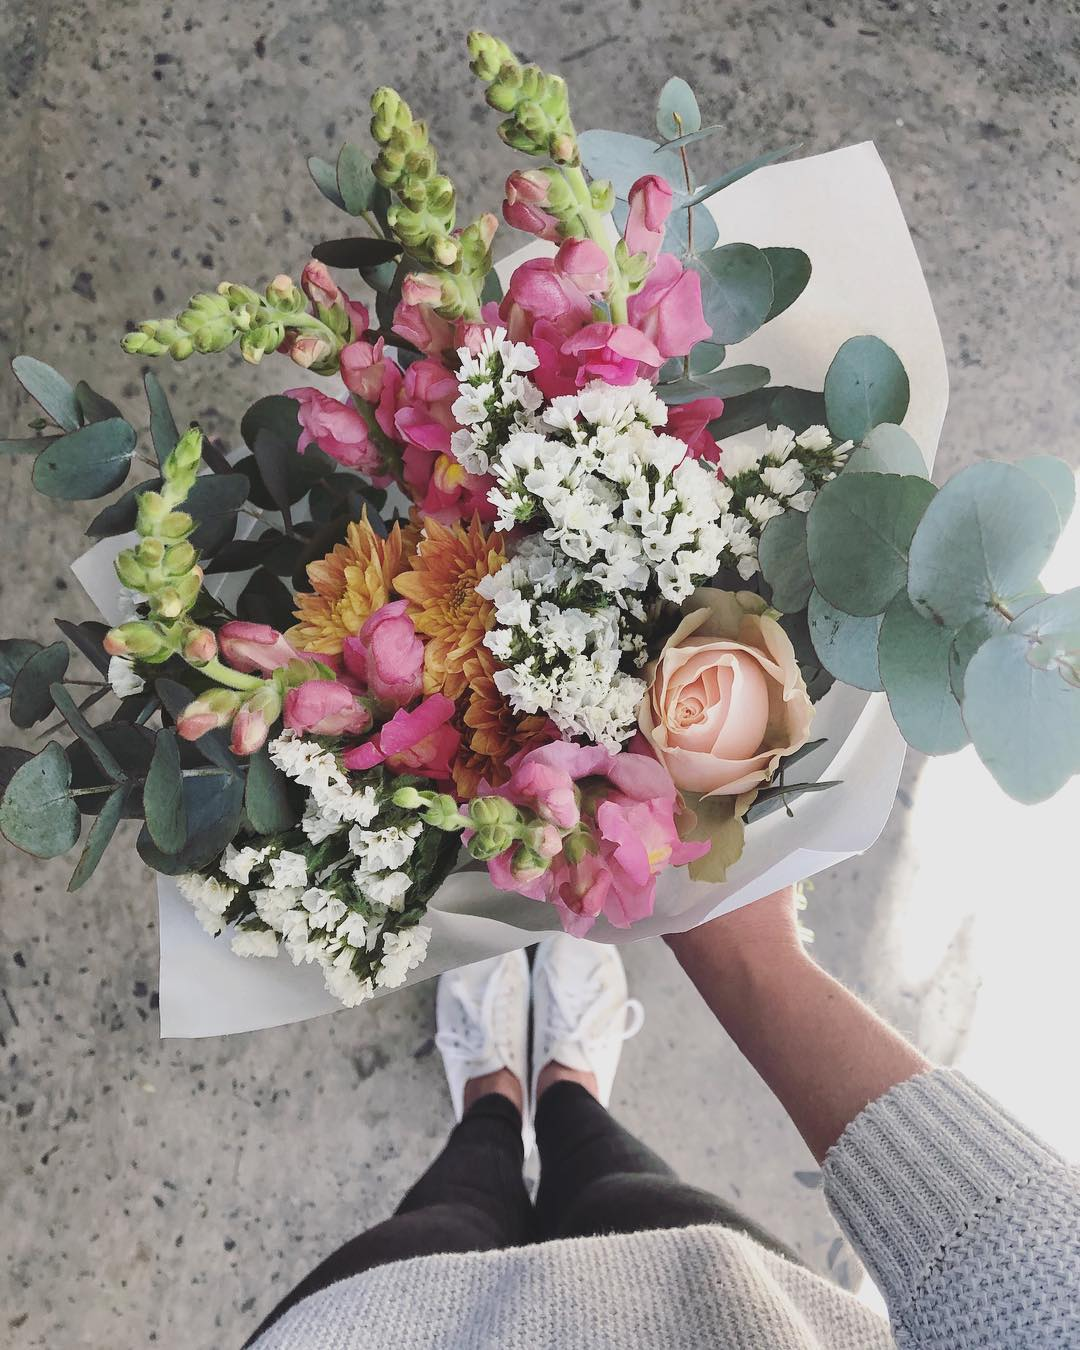 Today's beautiful Posy is beautiful snapdragons with white statice, peach roses 🍑 and penny gum. Order online before 12:30pm for delivery today. . . #Petalandpost#capetown#capetownflorist#lovezabuyza#localzadesign#lovelocalza#hellopretty#capetownmag#cylcollective #capetownlikes#supportlocal#posylove#wedding#local#botanical#theprettyblog#gardenday#capetowninfo#handmadeincapetown#madeinsouthafrica#lokalza#durbanville#proudlysouthafrican